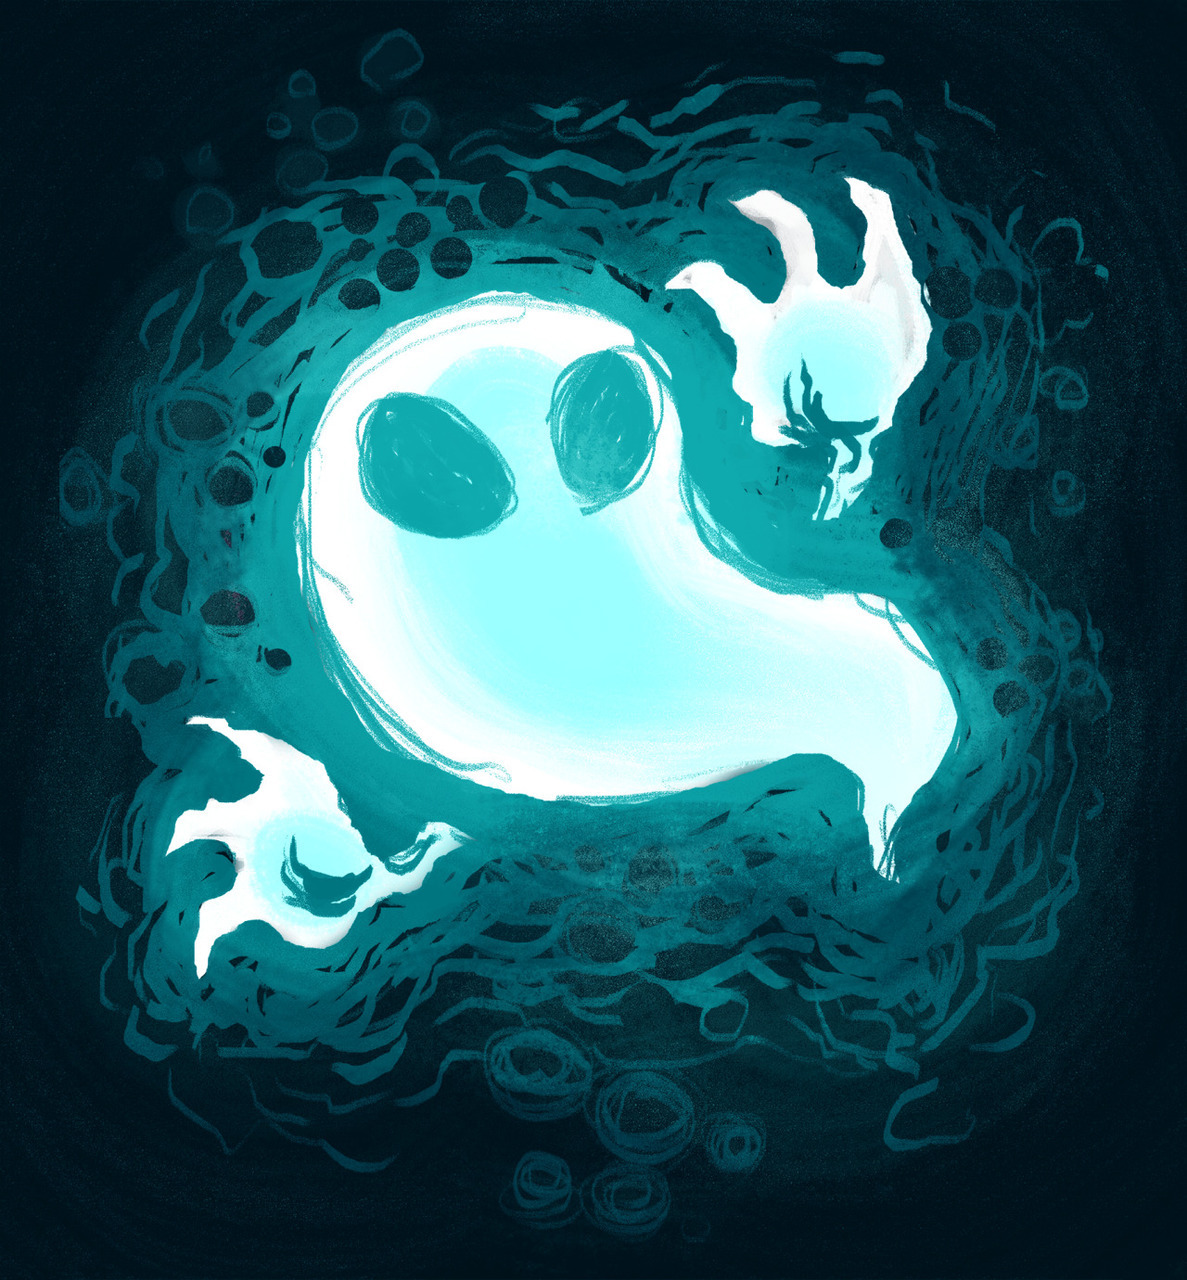 aesthetic, blue and black, cute, digital art, ghost, halloween, spooky